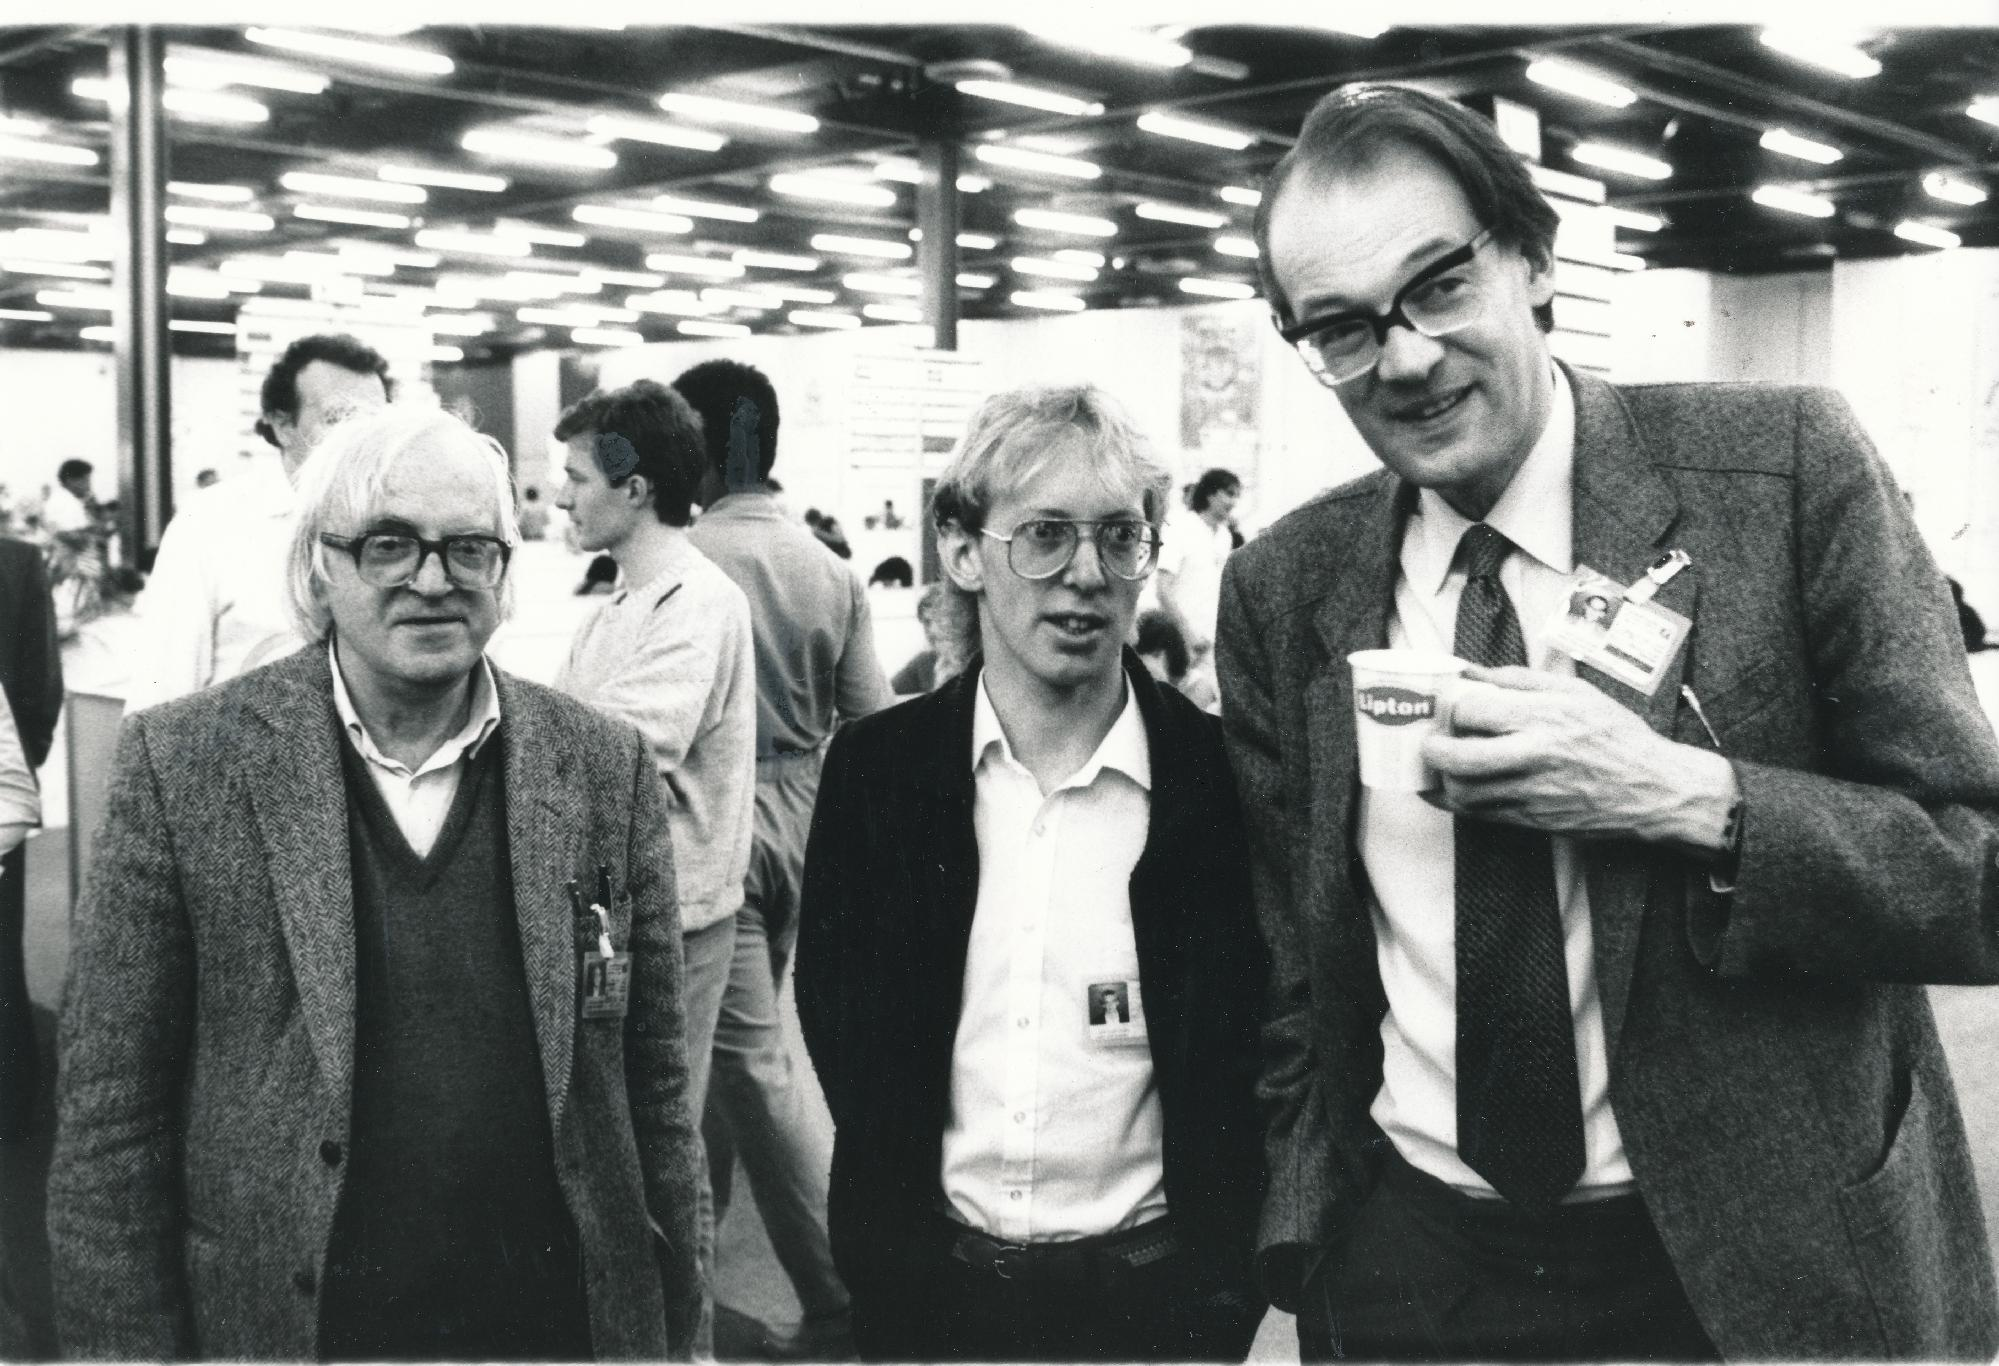 Bob Wade OBE, Murray Chandler MNZM and David Anderton OBE at the 1986 Dubai Olympiad. Photograph by Frits Agterdenbos